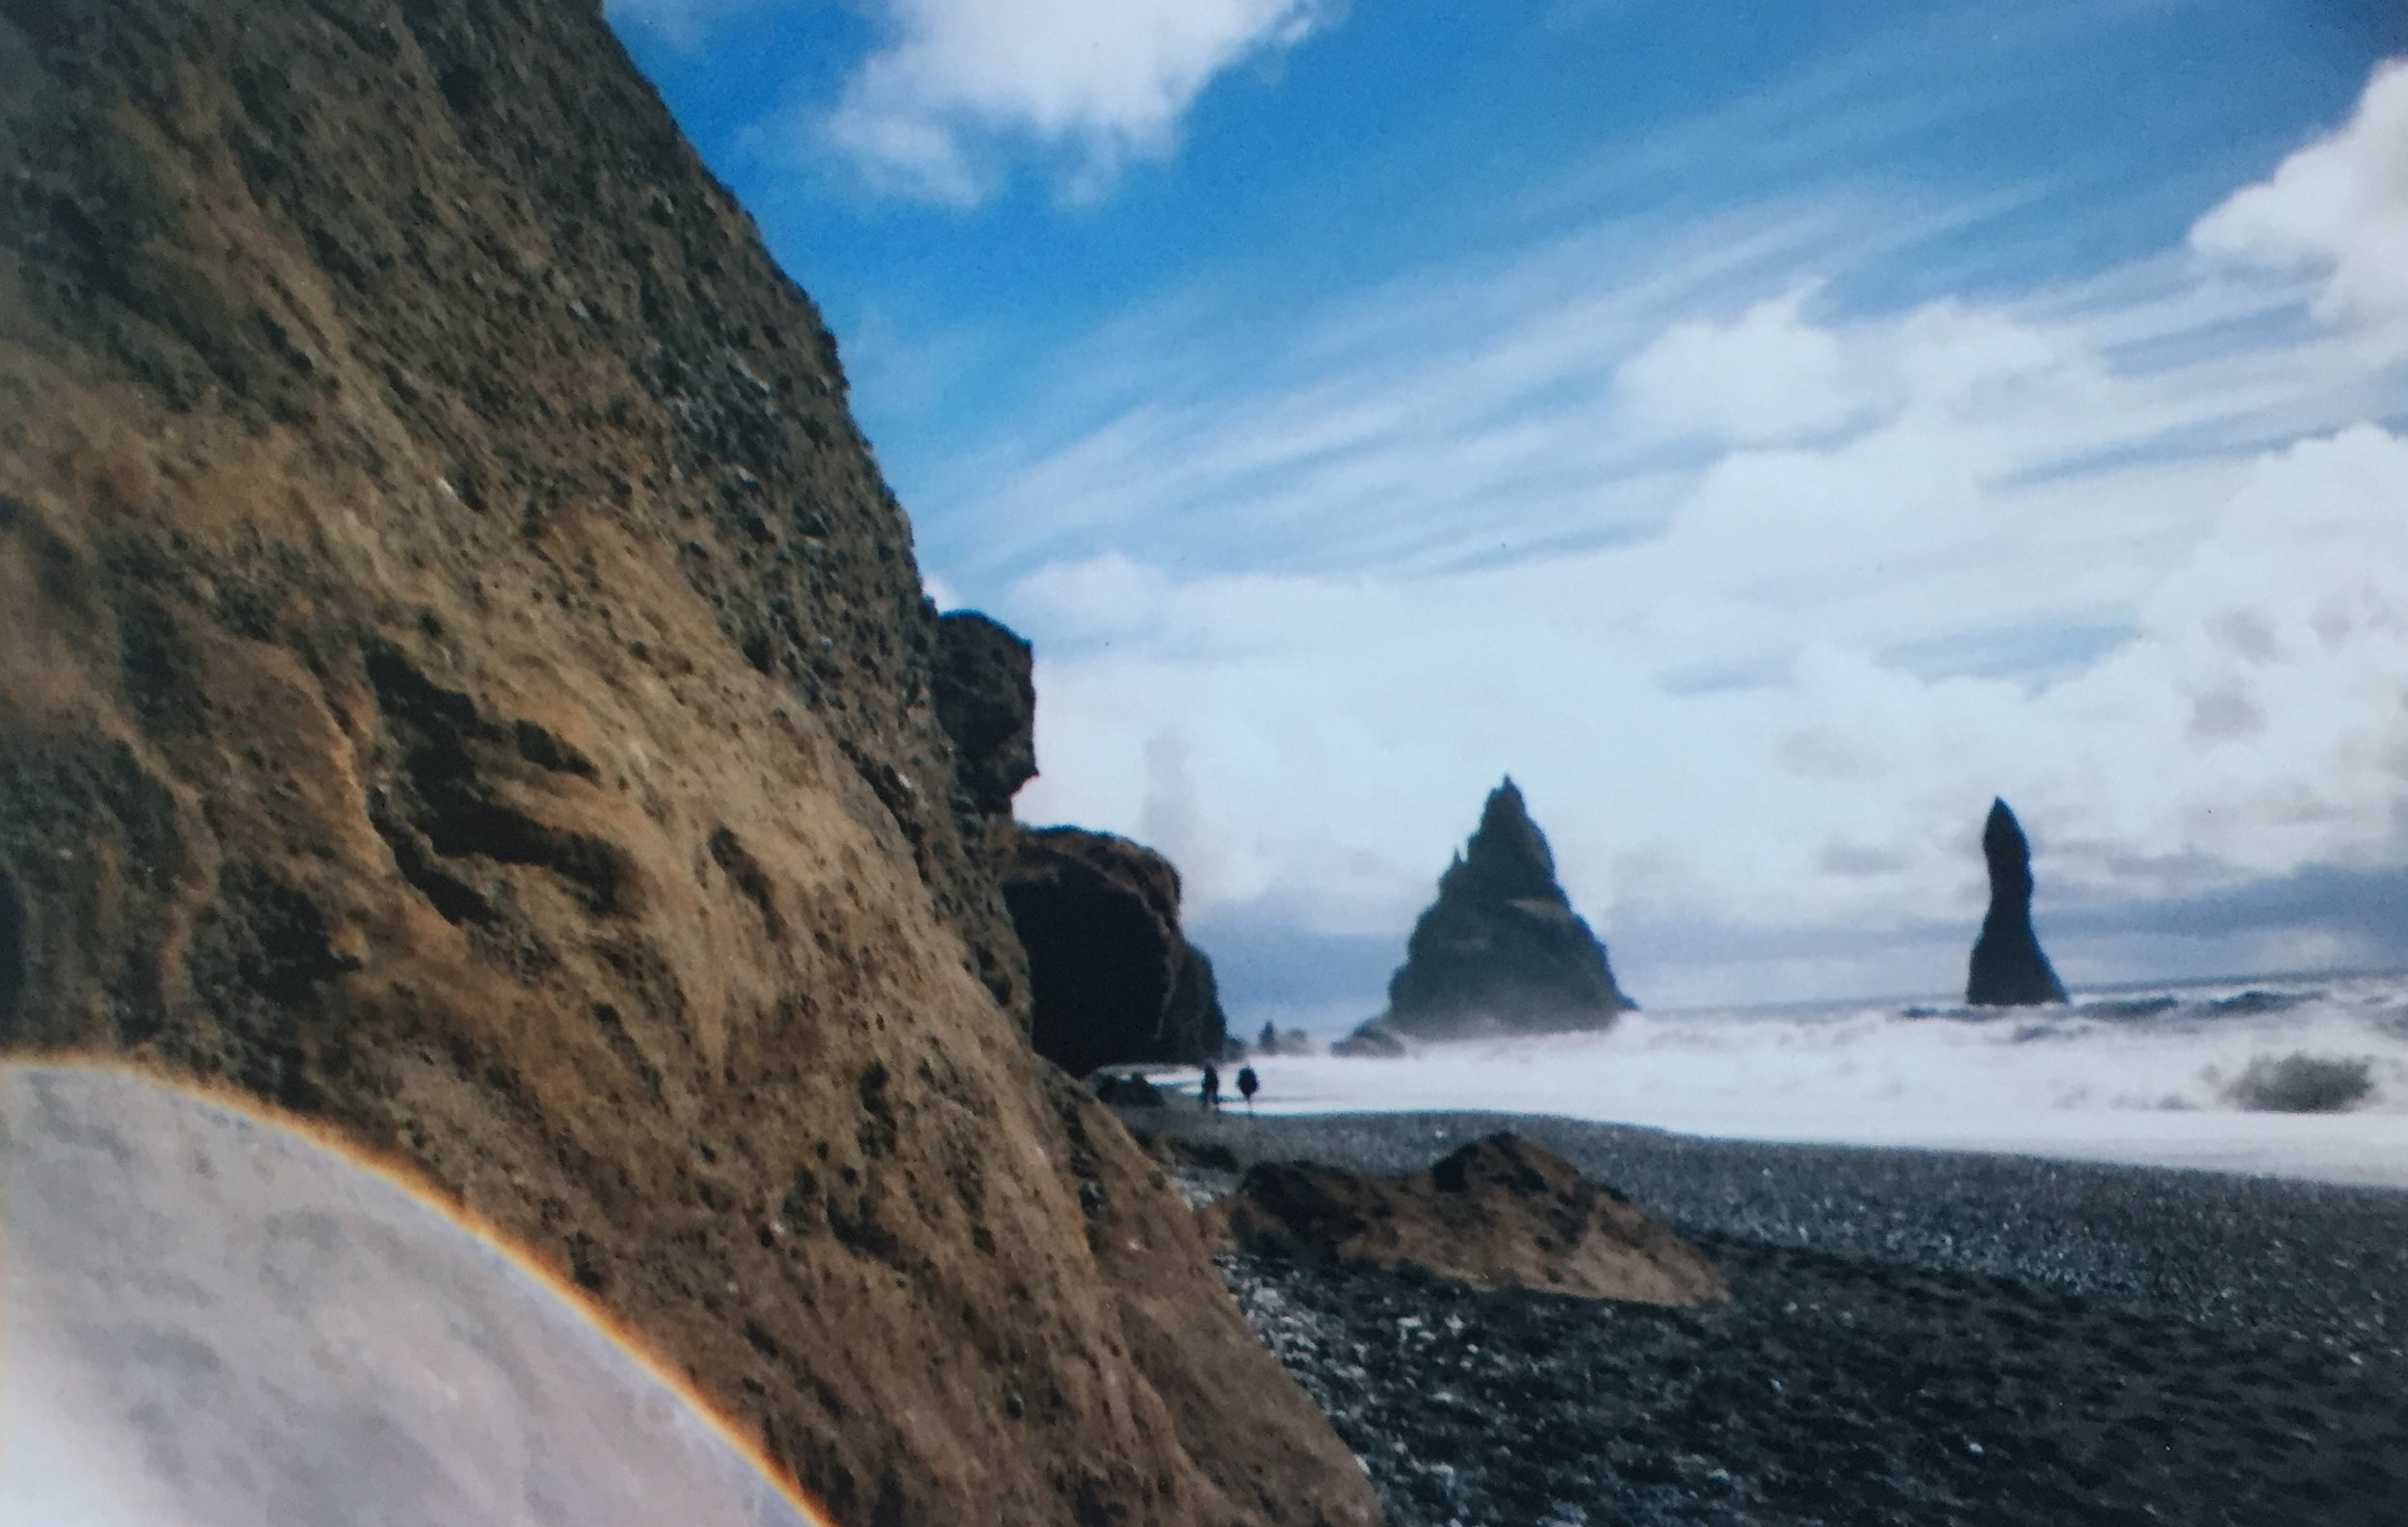 The Black Sand Beach in Vìk, Southern Iceland